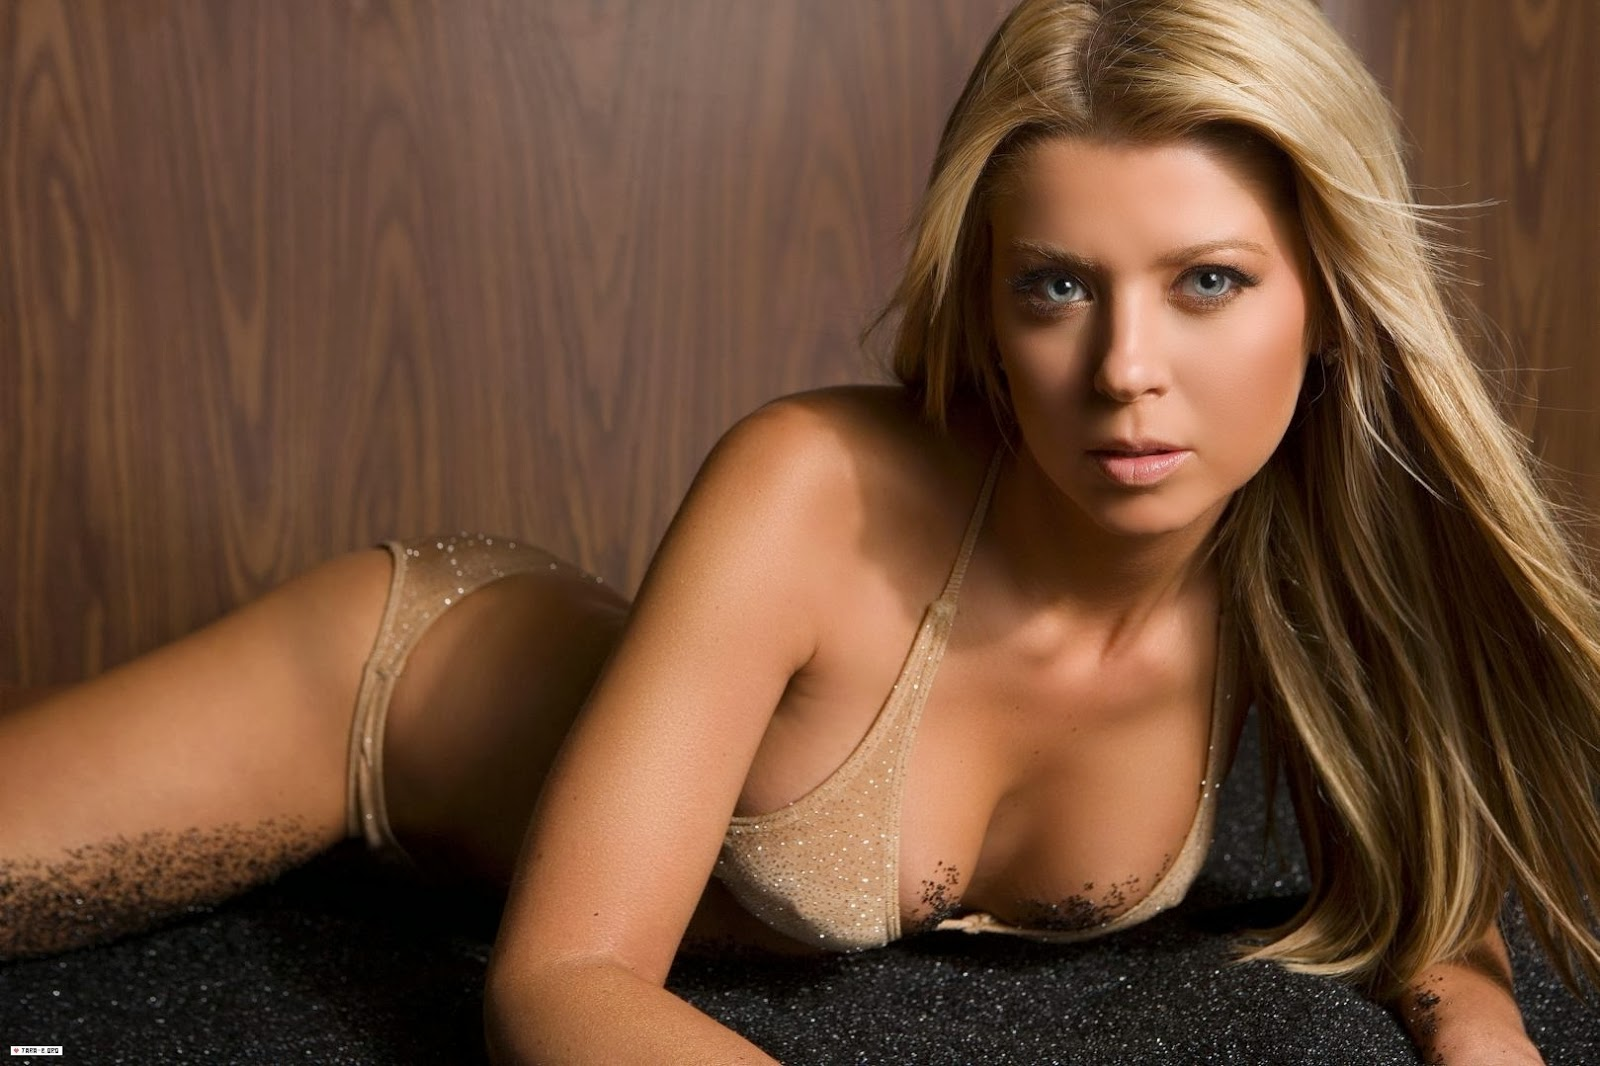 Tara Reid Bio News Fashion Wallpaper